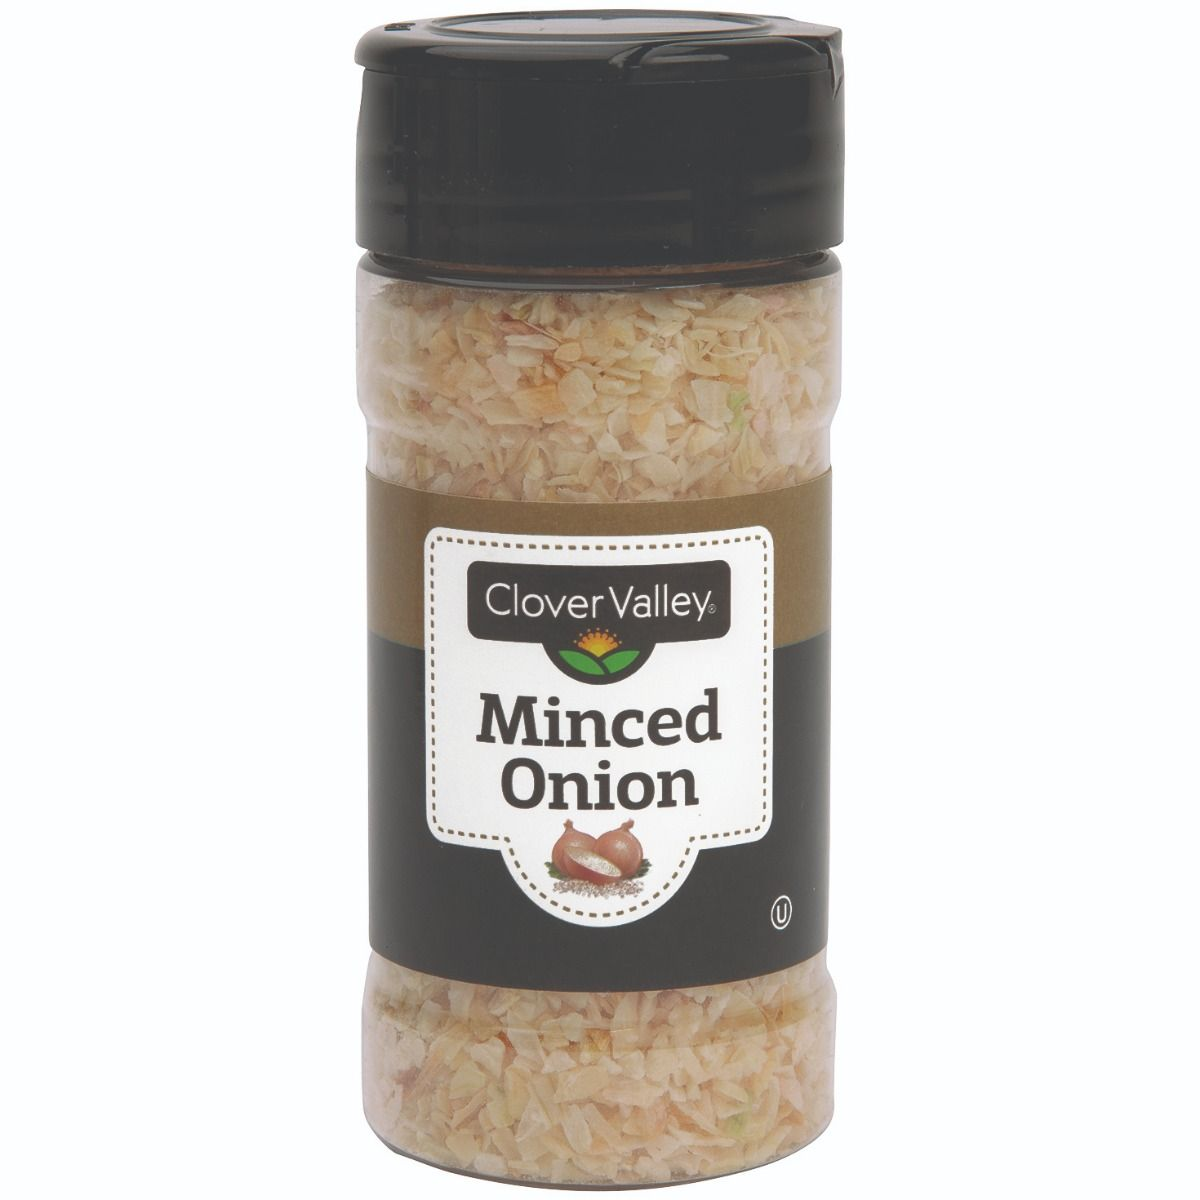 Clover Valley Minced Onion, 2 Oz.